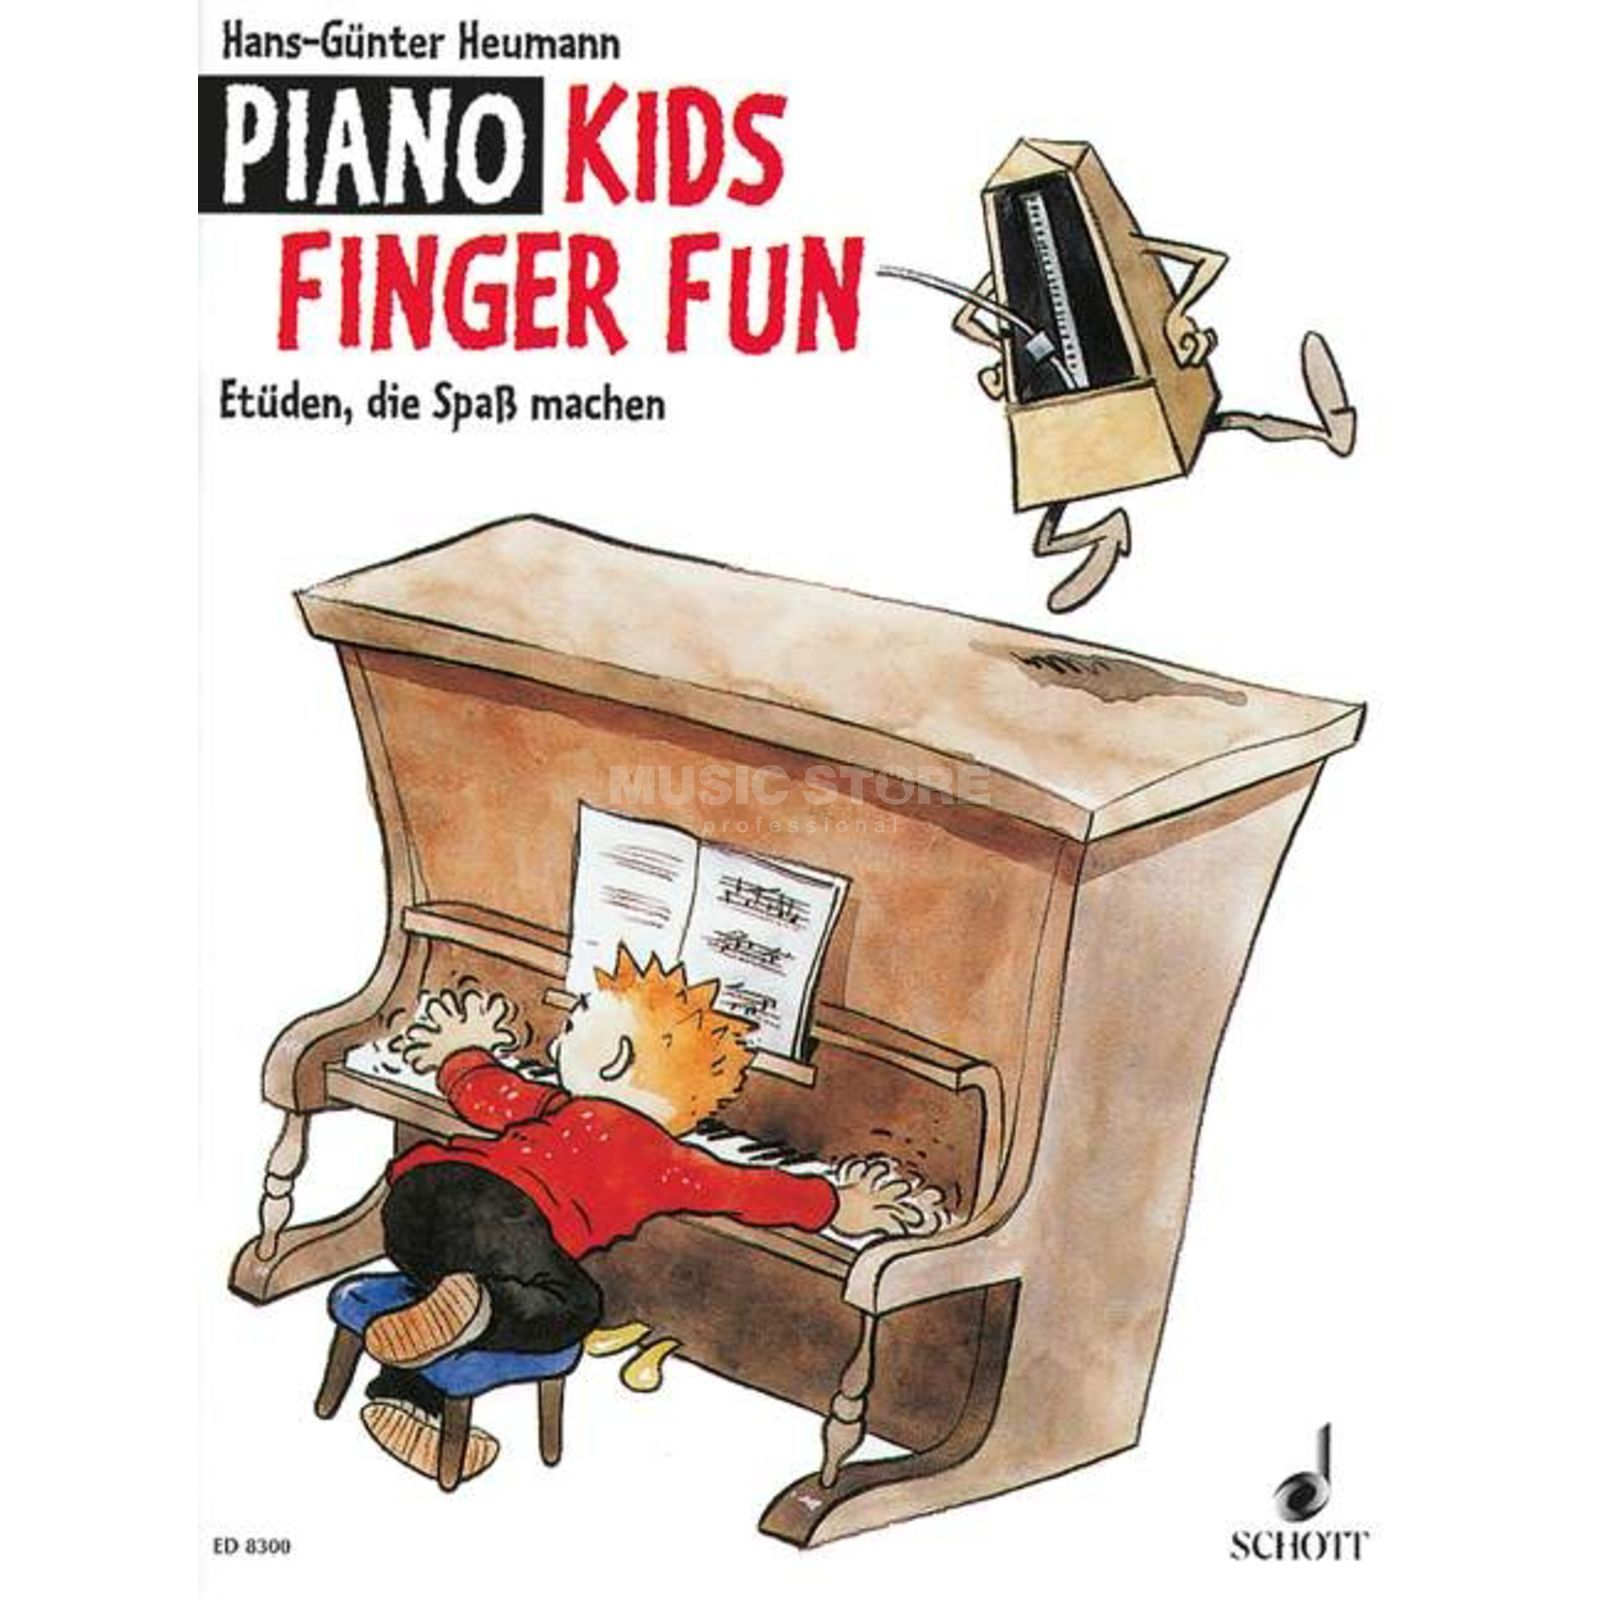 Schott Music Piano Kids Finger Fun Hans-Günter Heumann, Buch Produktbild